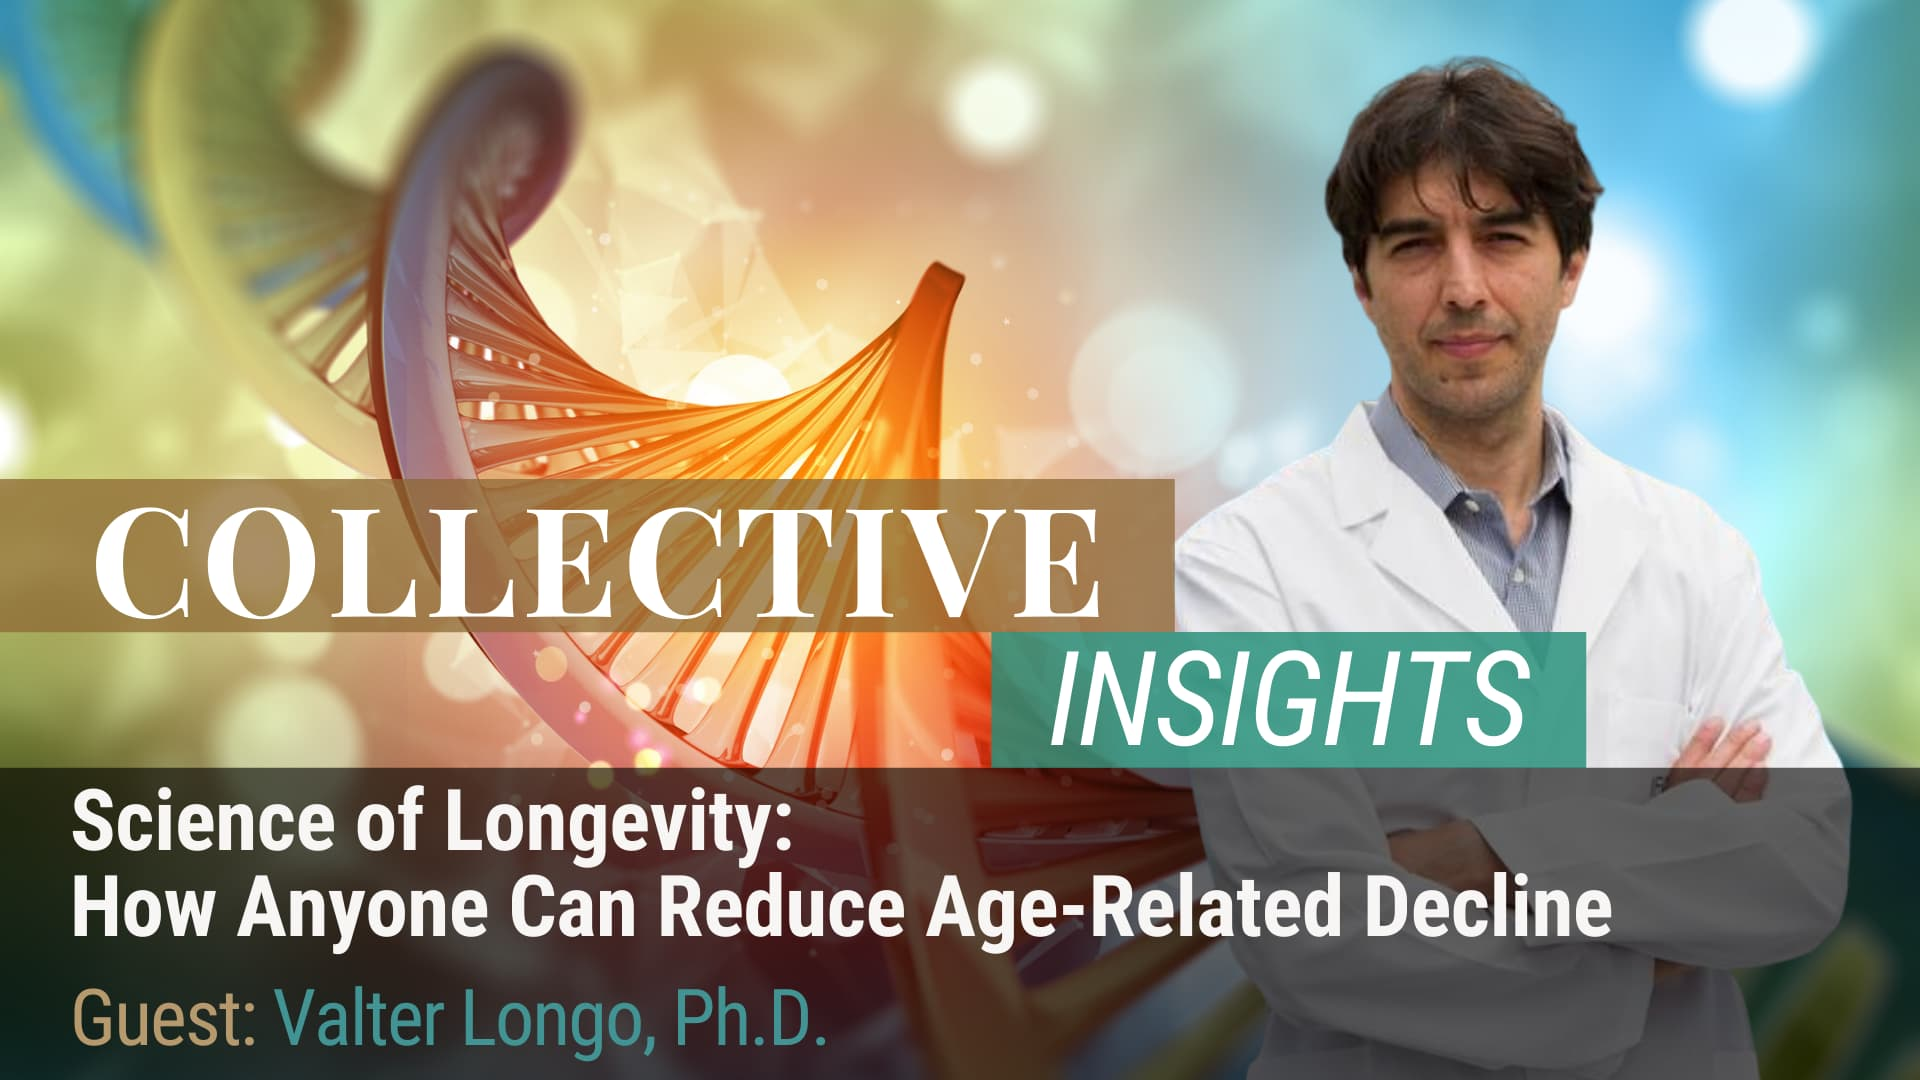 Science of Longevity: How Anyone Can Reduce Age-Related Decline